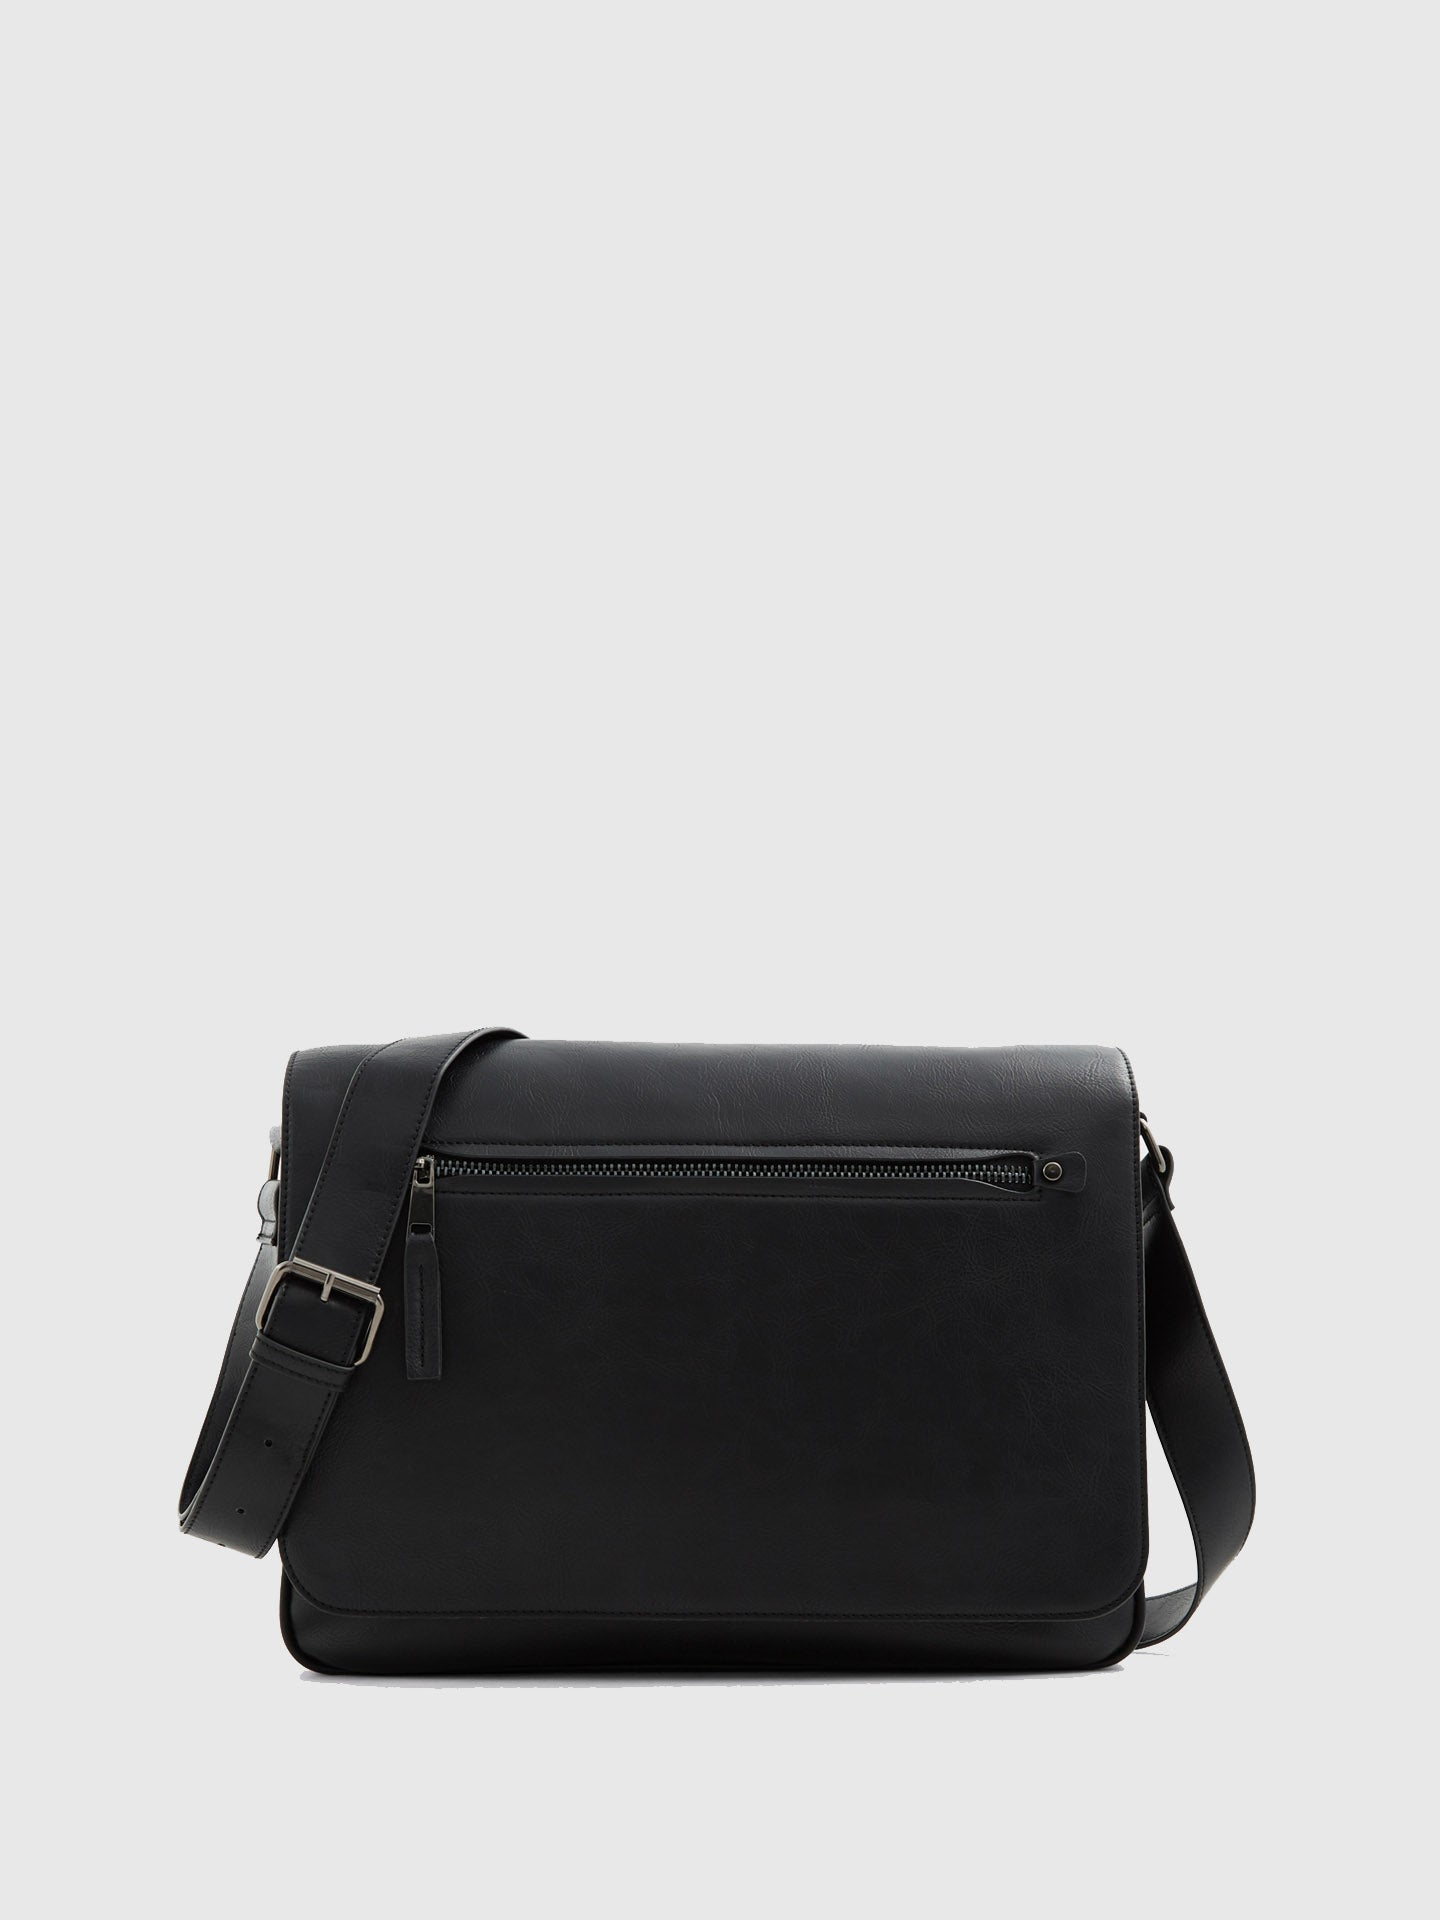 Aldo Black Crossbody Bag